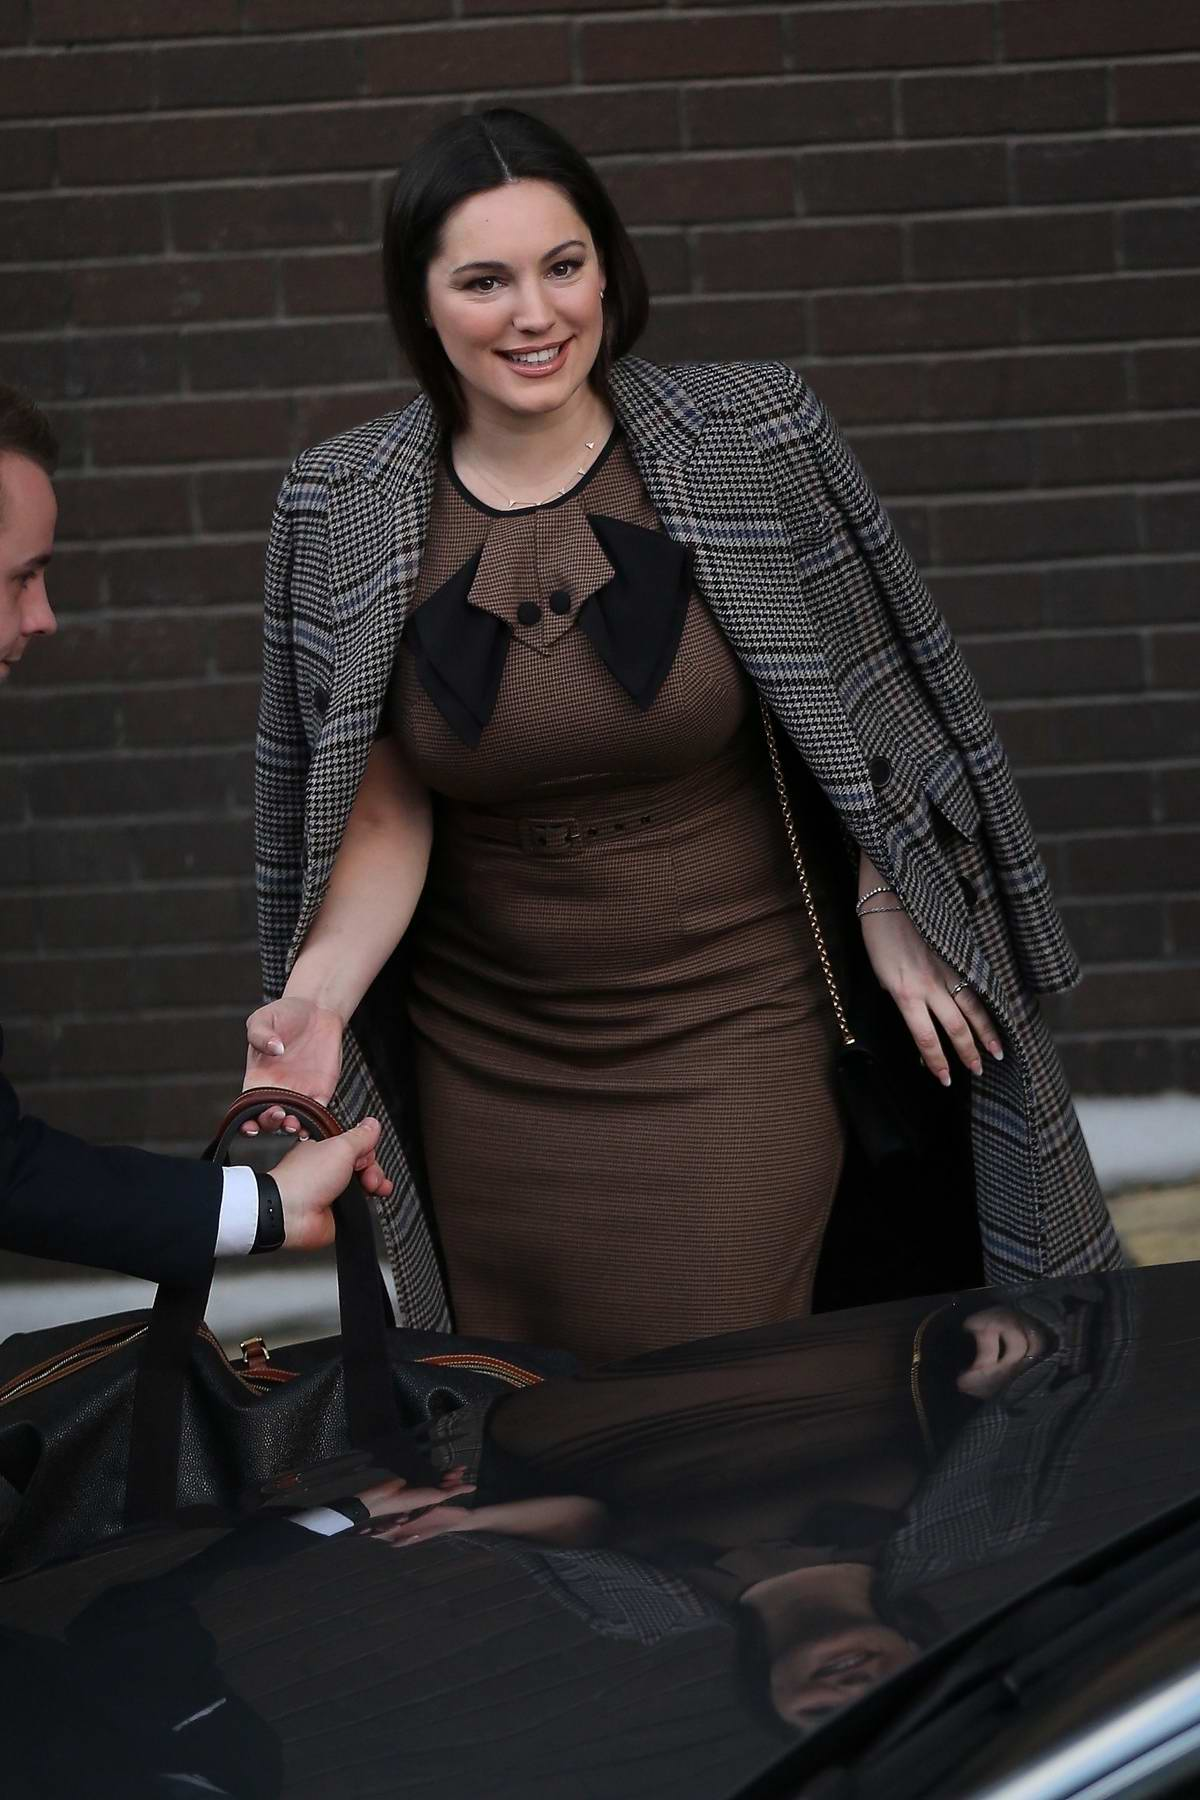 Kelly Brook leaving after making an appearance on 'Loose Women' TV show at the ITV studios in London